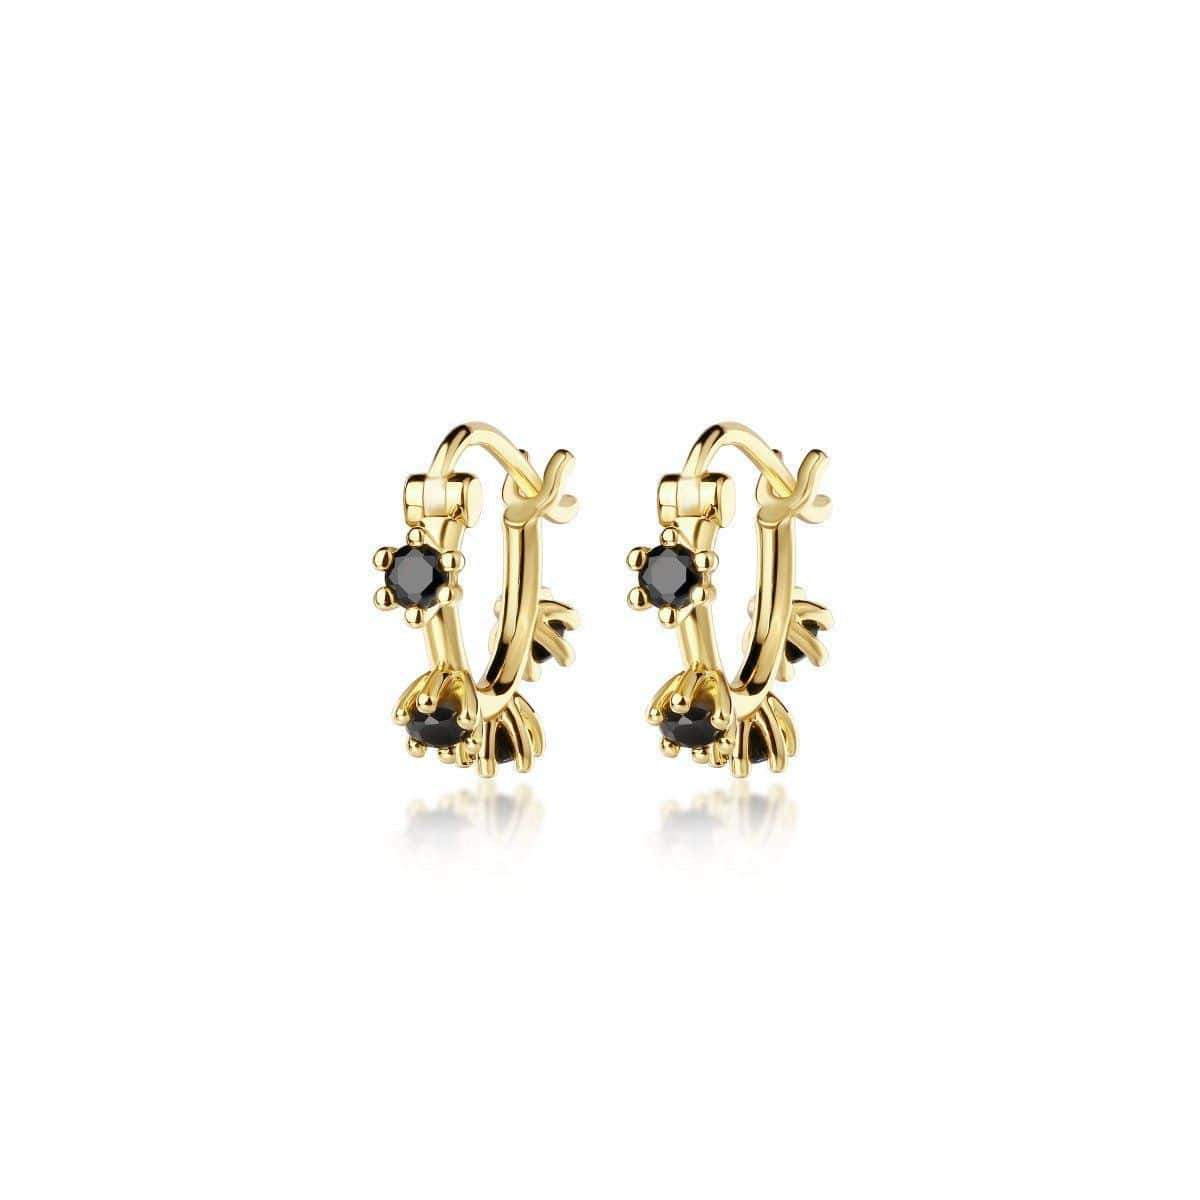 Adele Mini Gemstone Earrings Gold Black Spinel